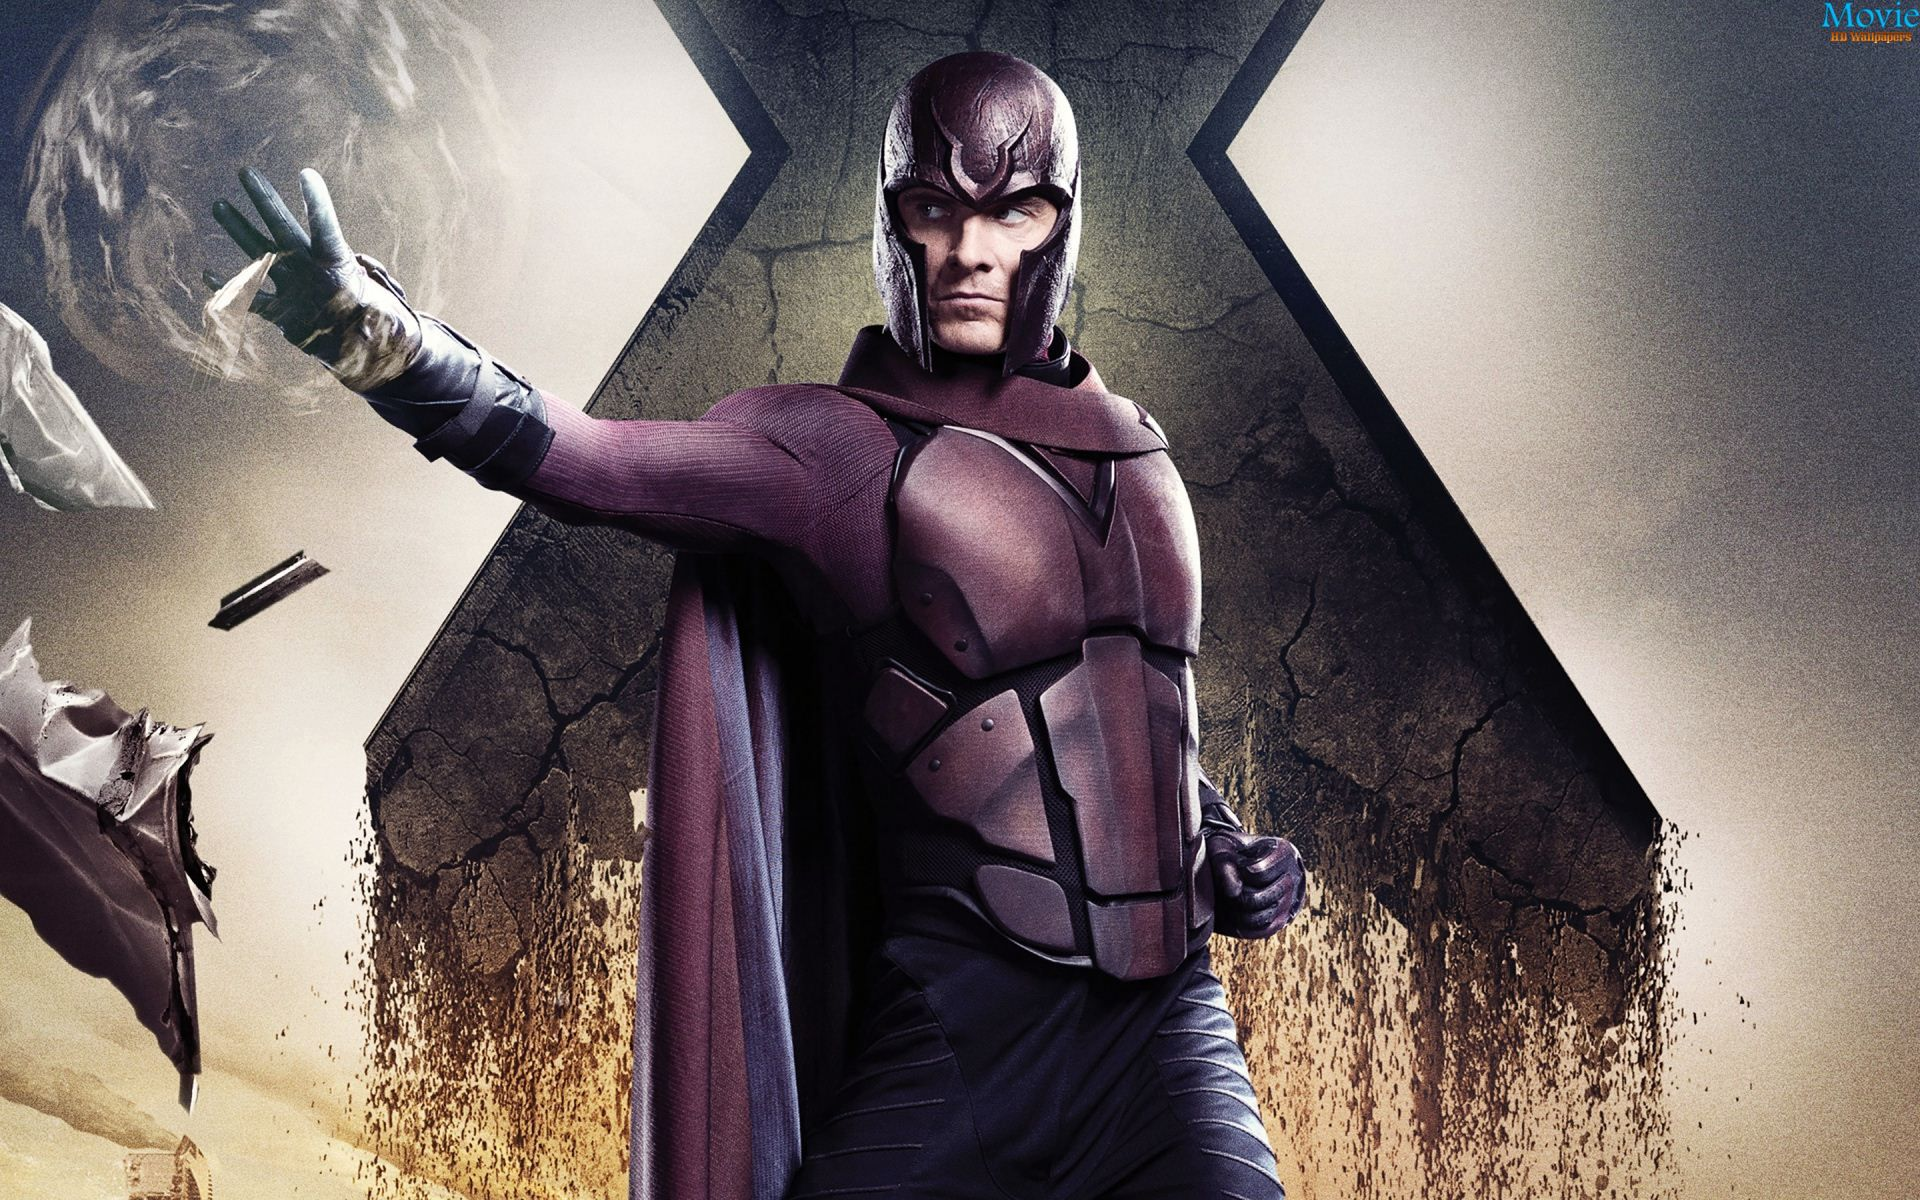 X Men Days Of Future Past Wallpaper: X-Men: Days Of Future Past New Posters